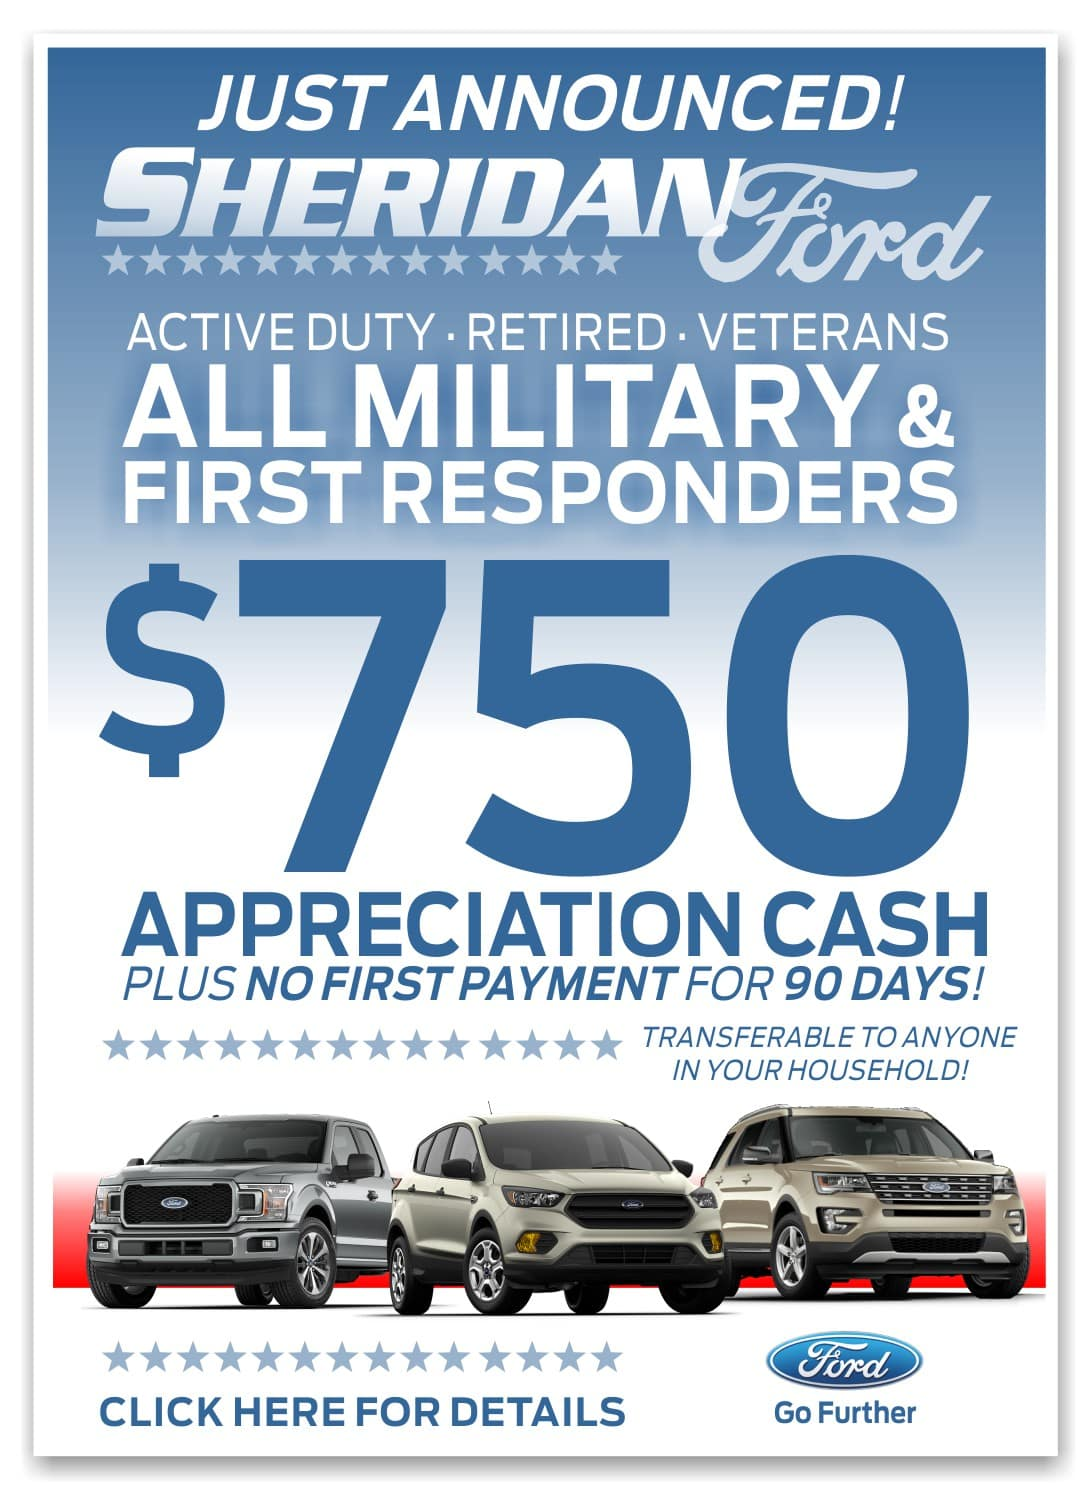 Ford First Responder >> All Military And First Responders Appreciation Cash Offer At